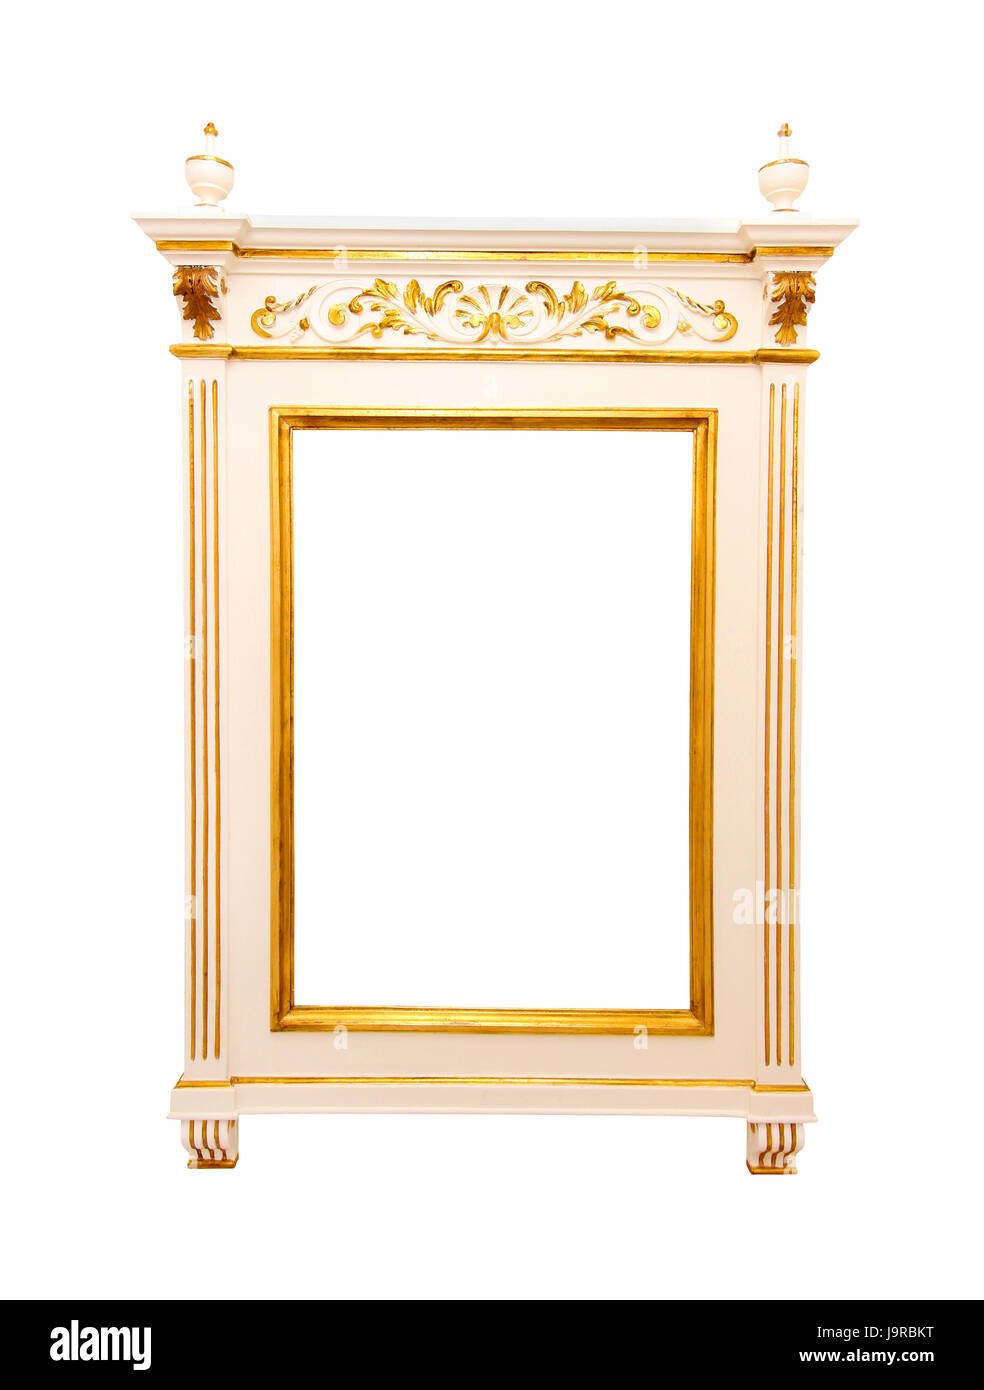 isolated, antique, rococo, frame, old, white, gold, framework, style ...